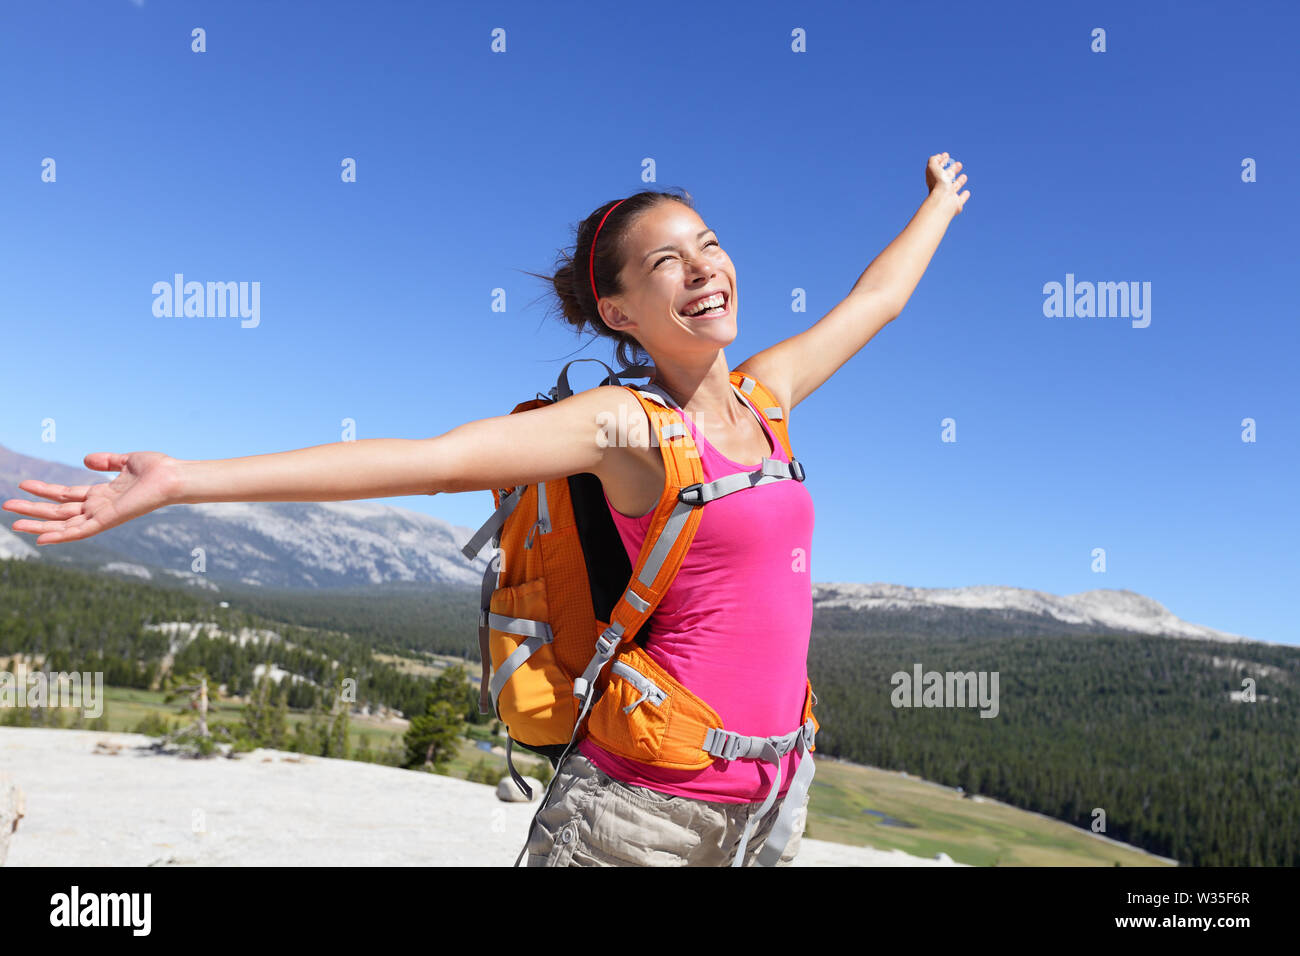 Happy hiker girl hiking carefree in nature. Young asian adult showing freedom pose after reaching summit mountain. - Stock Image